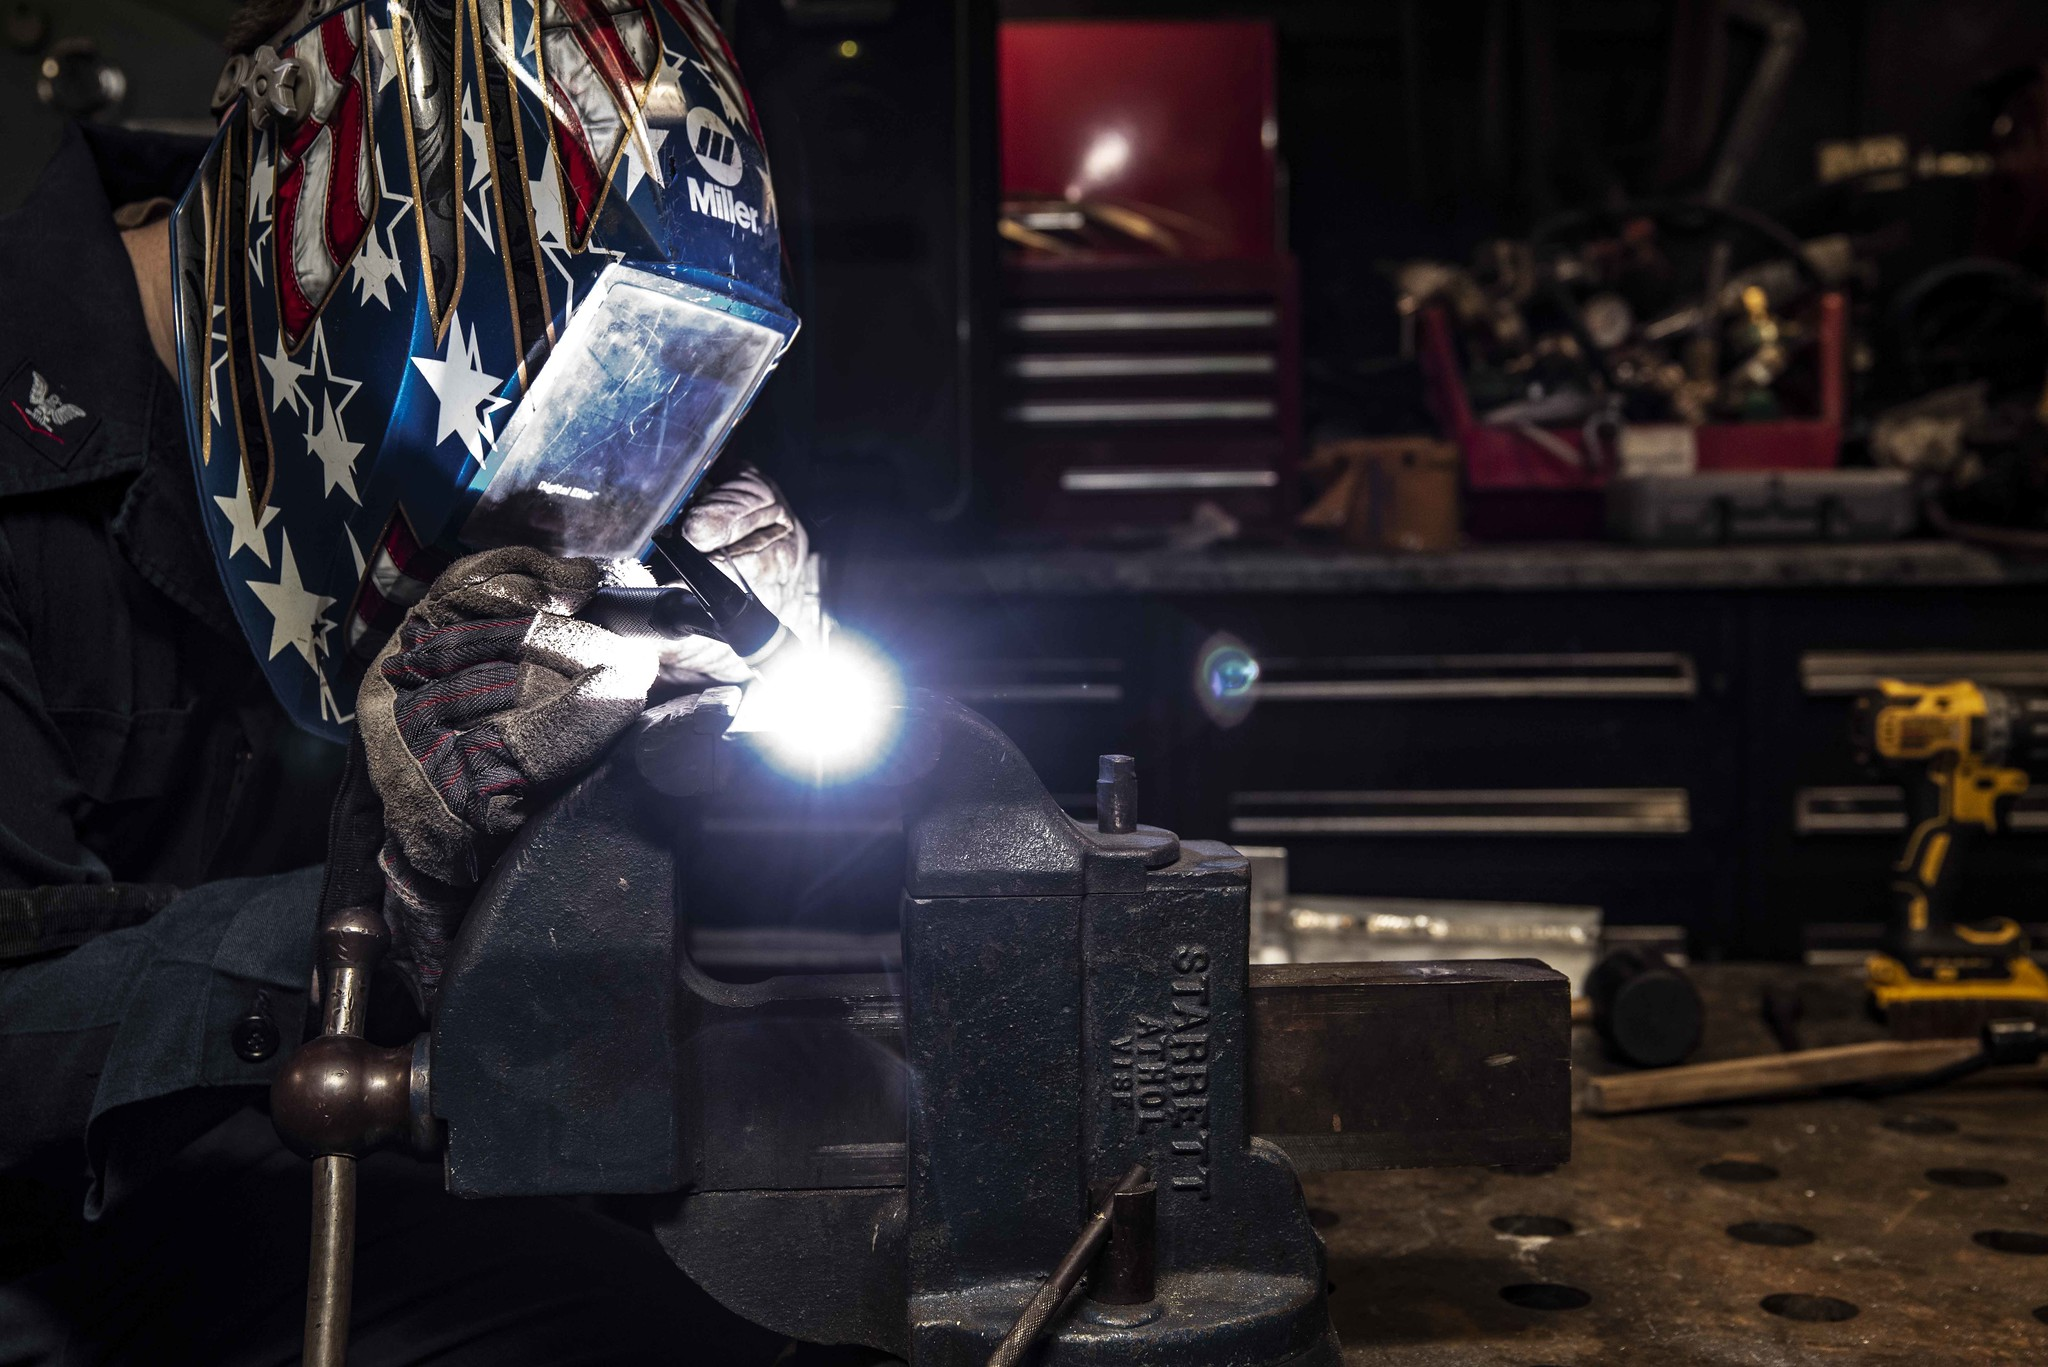 Hull Maintenance Technician 3rd Class Drew Knutson welds stainless steel and aluminum angles in the repair shop of the aircraft carrier USS Ronald Reagan (CVN 76) on July 8, 2020, in the South China Sea. (MC3 Jason Tarleton/Navy)